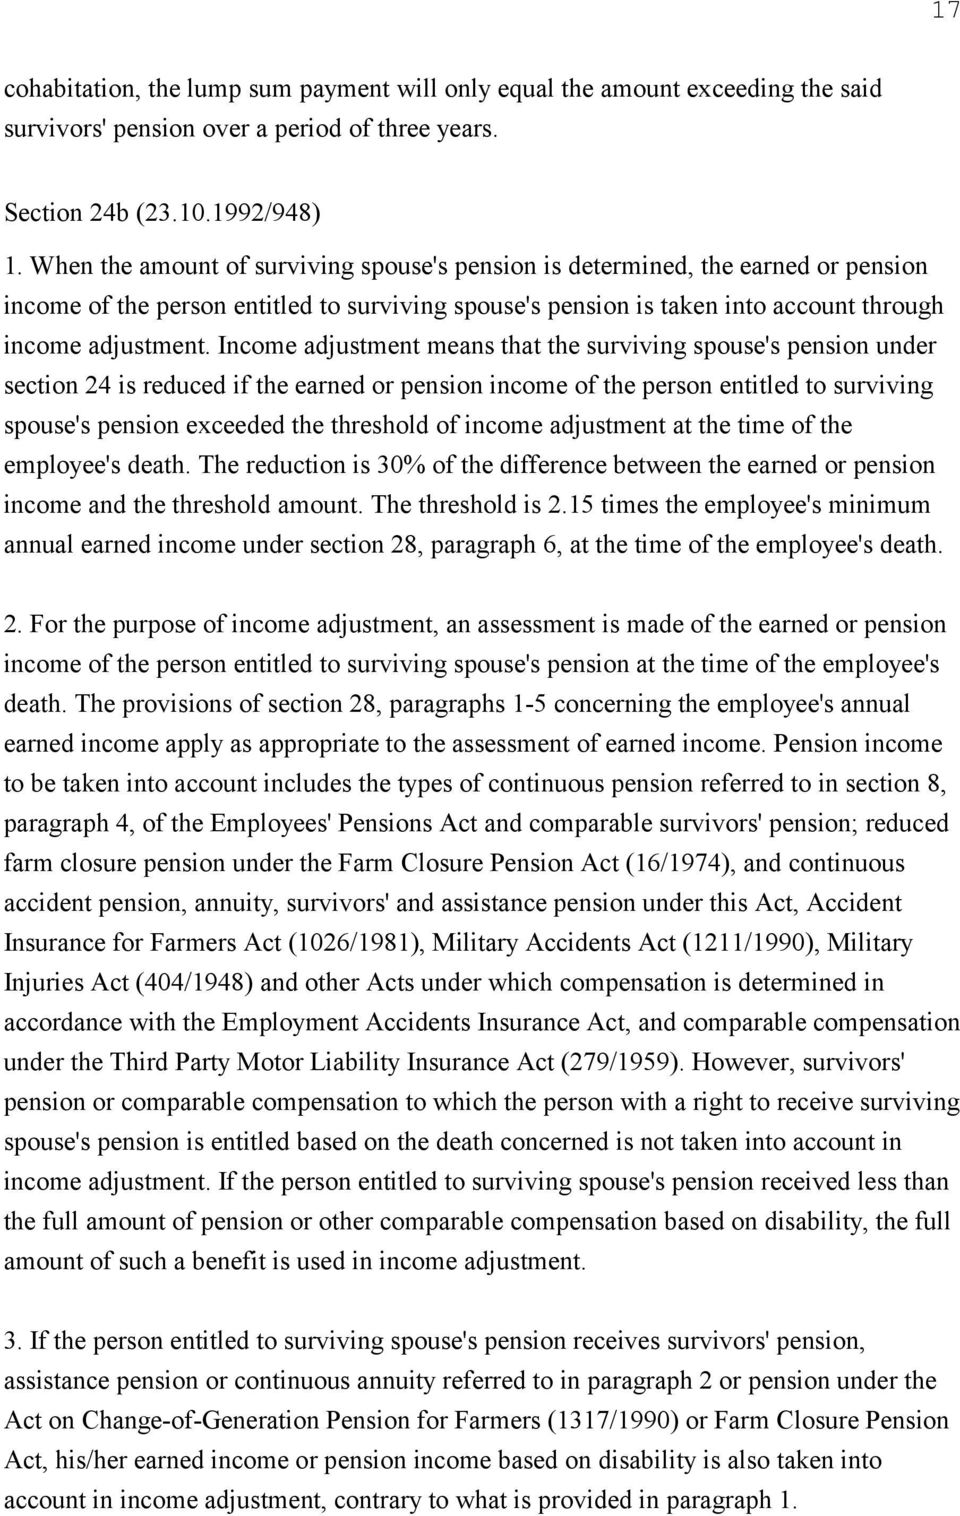 Income adjustment means that the surviving spouse's pension under section 24 is reduced if the earned or pension income of the person entitled to surviving spouse's pension exceeded the threshold of